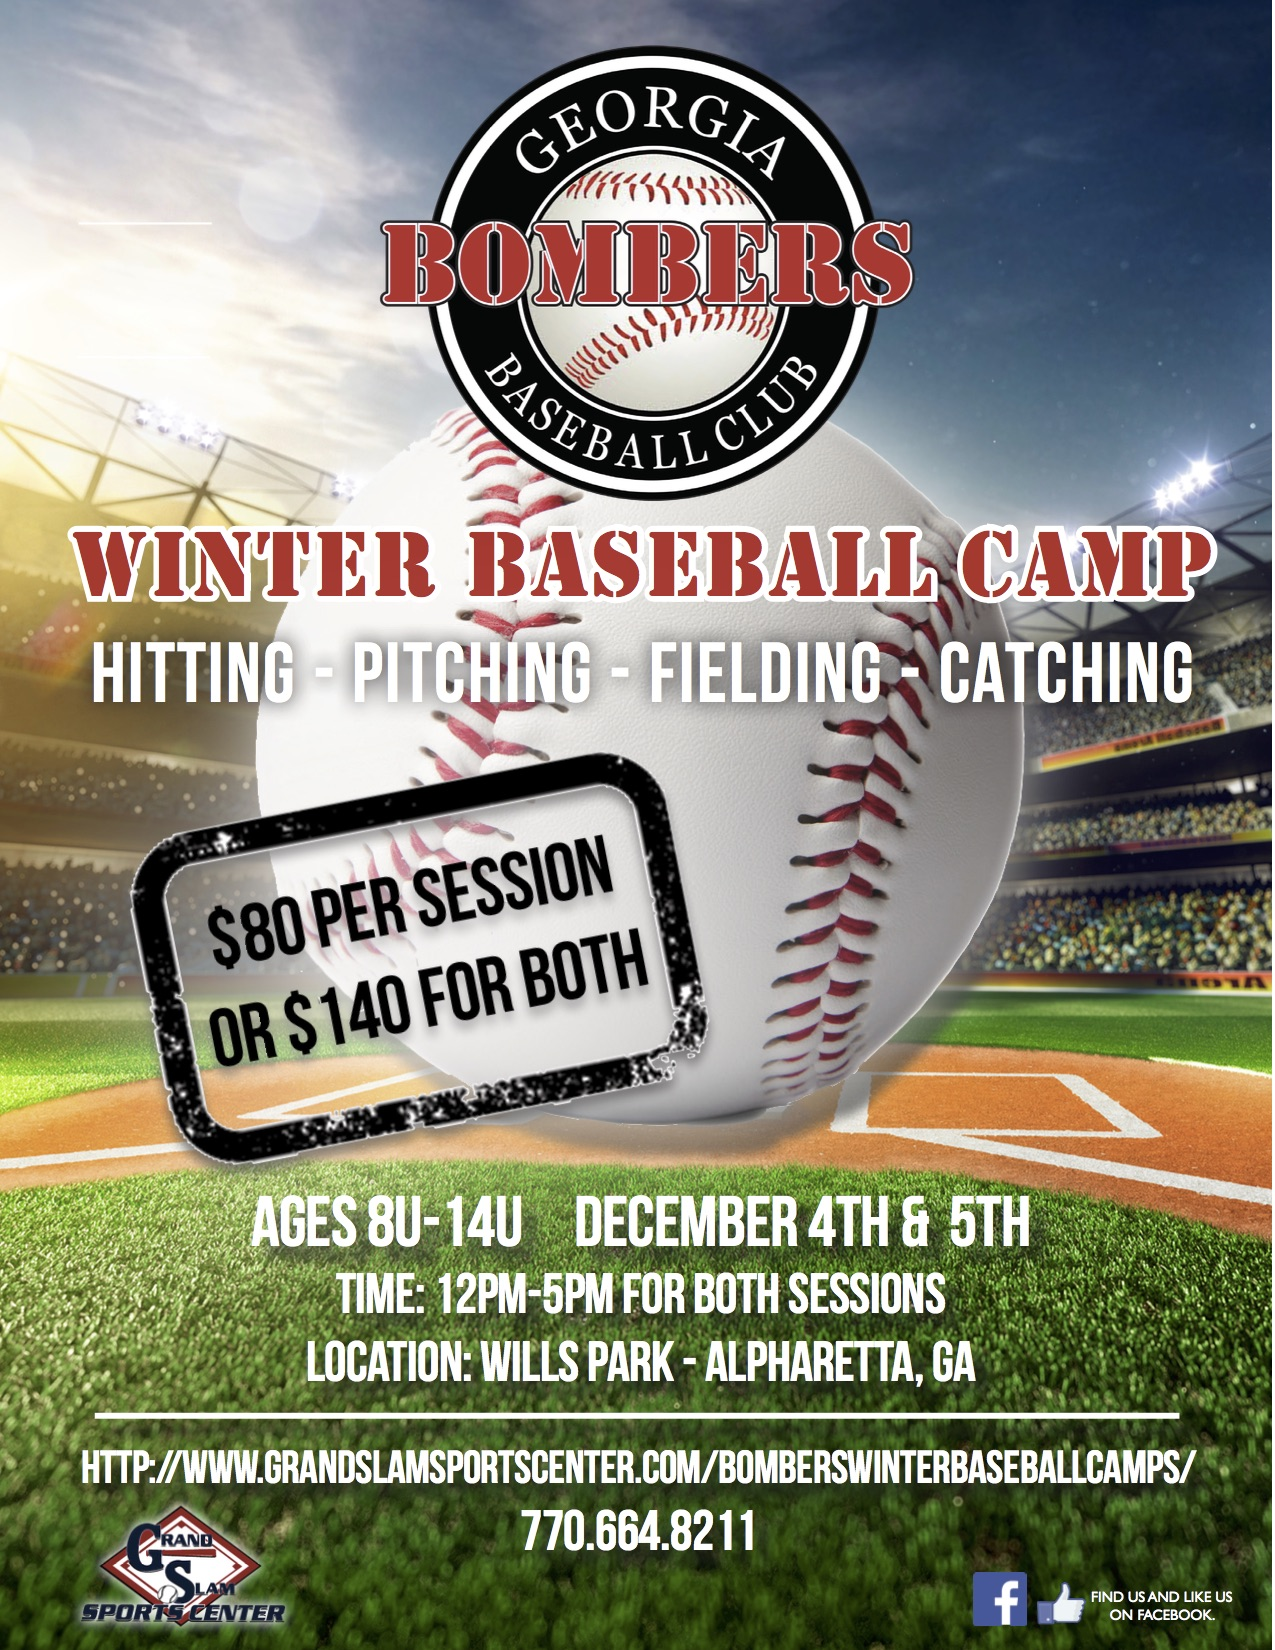 2015 Bombers Winter Baseball Camps